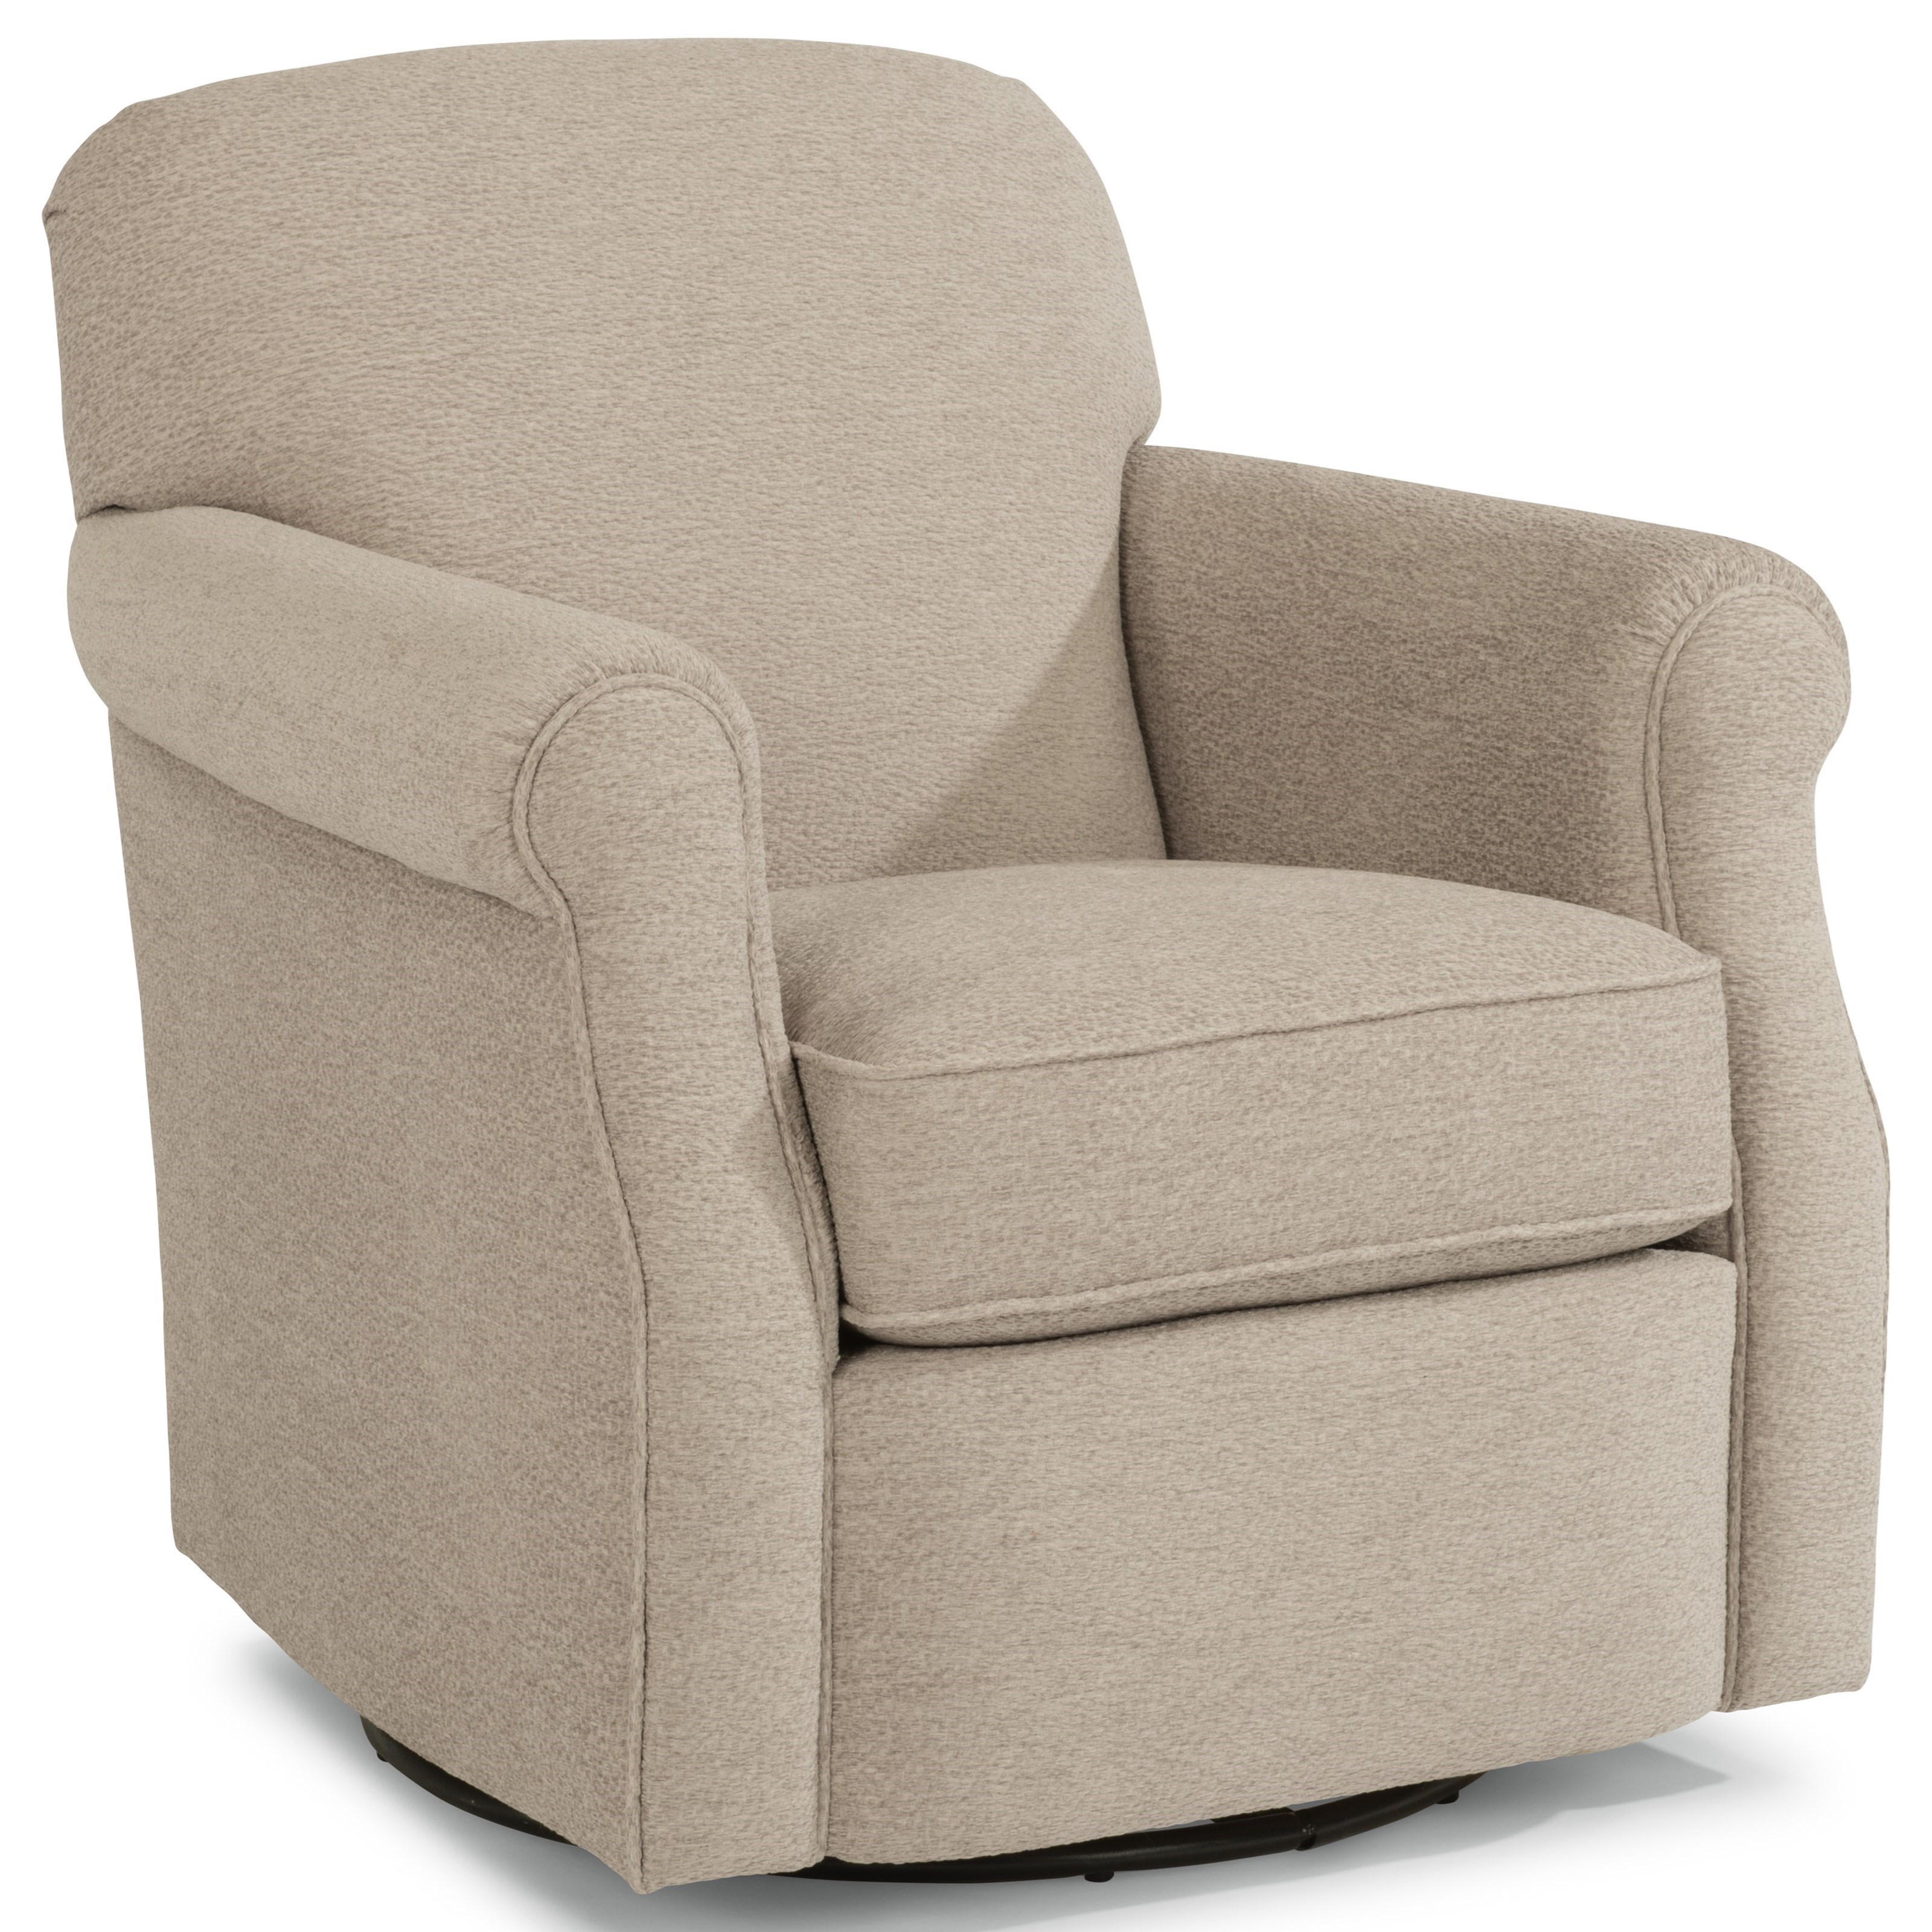 Flexsteel mabel 0133 11 casual swivel chair with rolled for Swivel accent chairs with arms